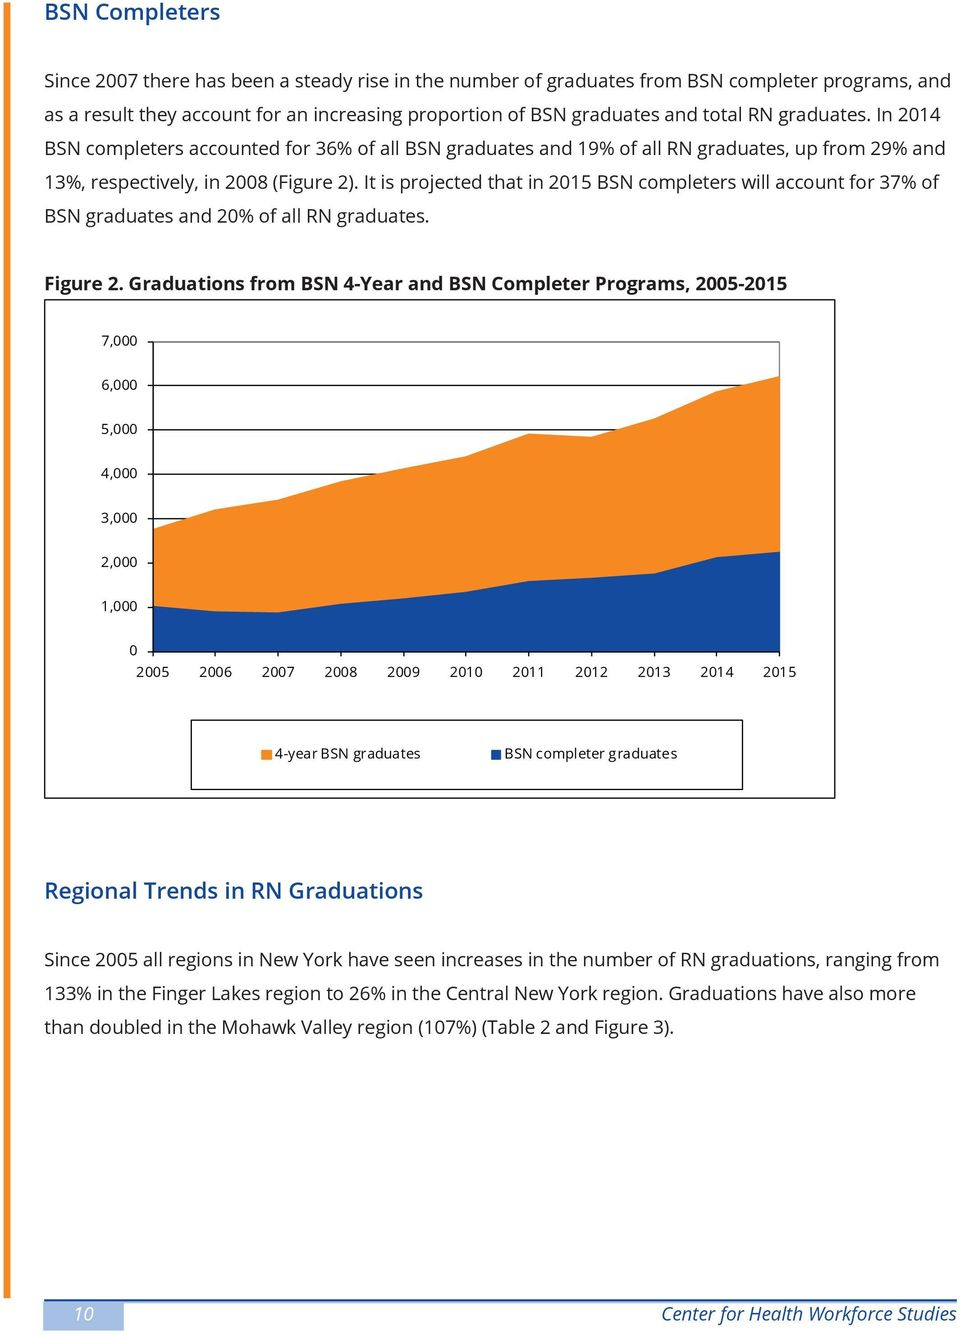 It is projected that in 2015 BSN completers will account for 37% of BSN graduates and 20% of all RN graduates. Figure 2.